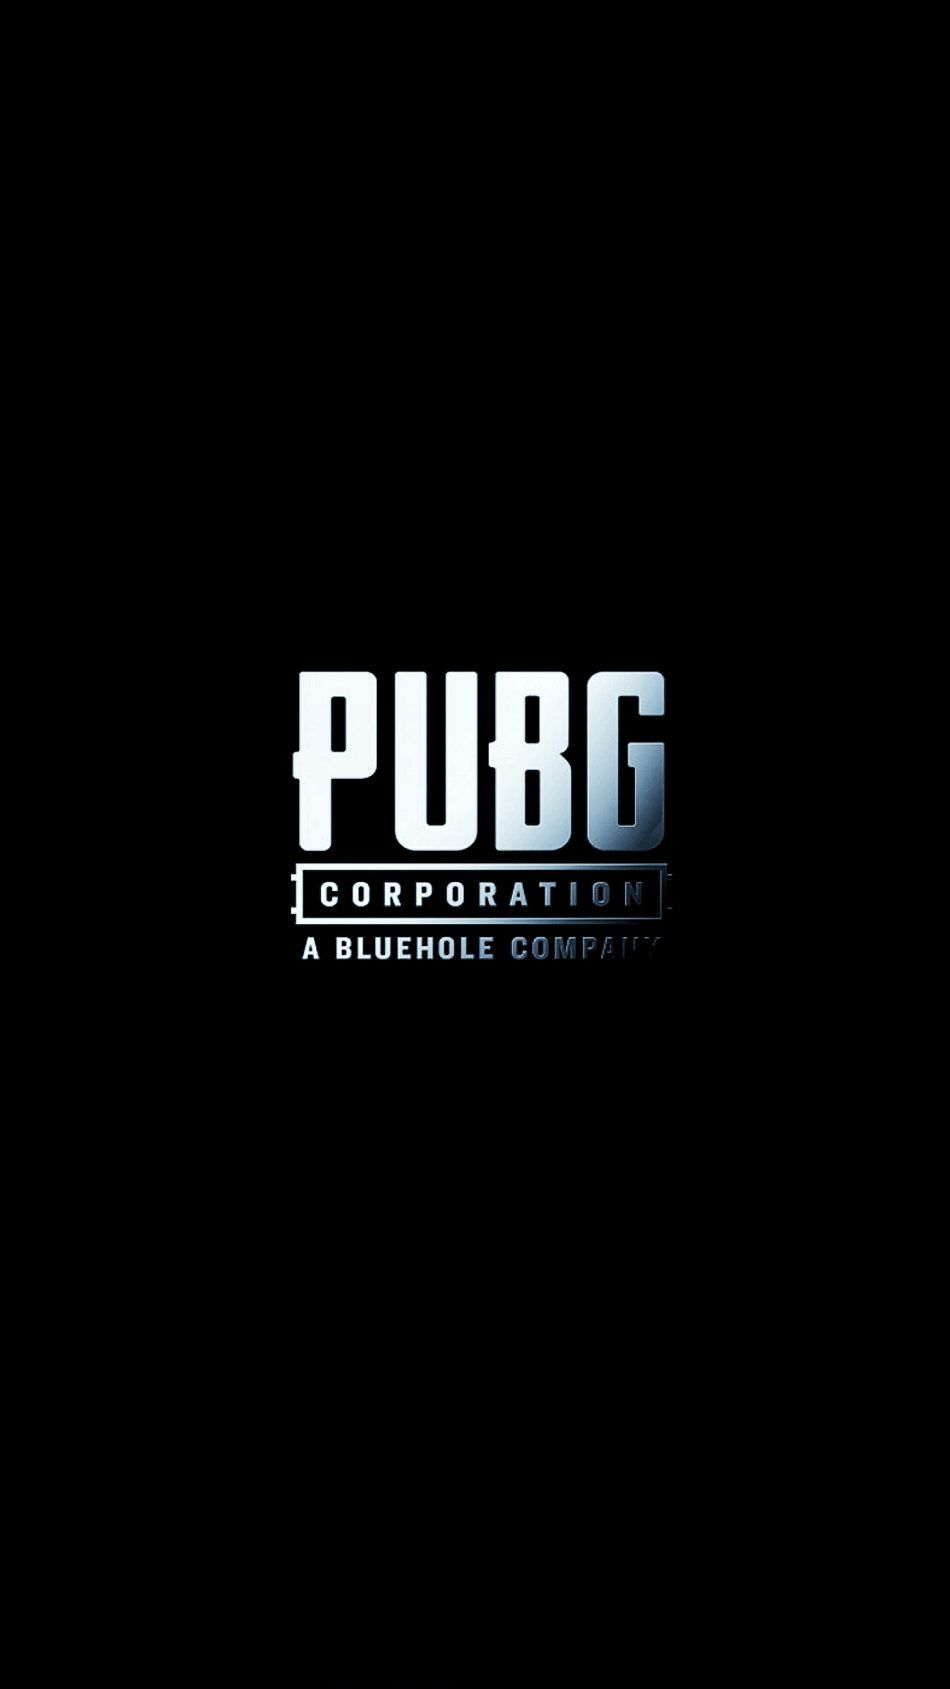 Pubg Logo Wallpapers Top Free Pubg Logo Backgrounds